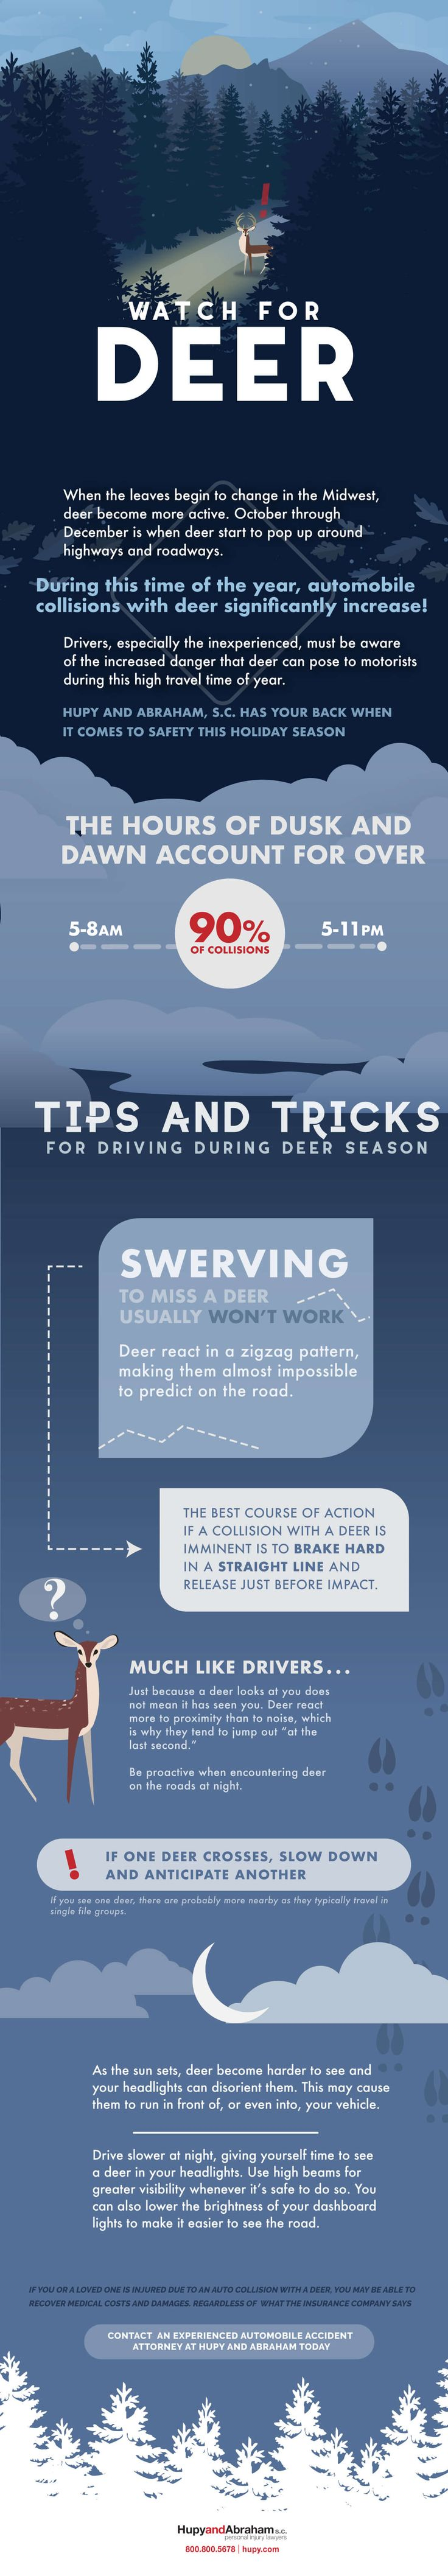 25+ unique Road safety tips ideas on Pinterest | Car